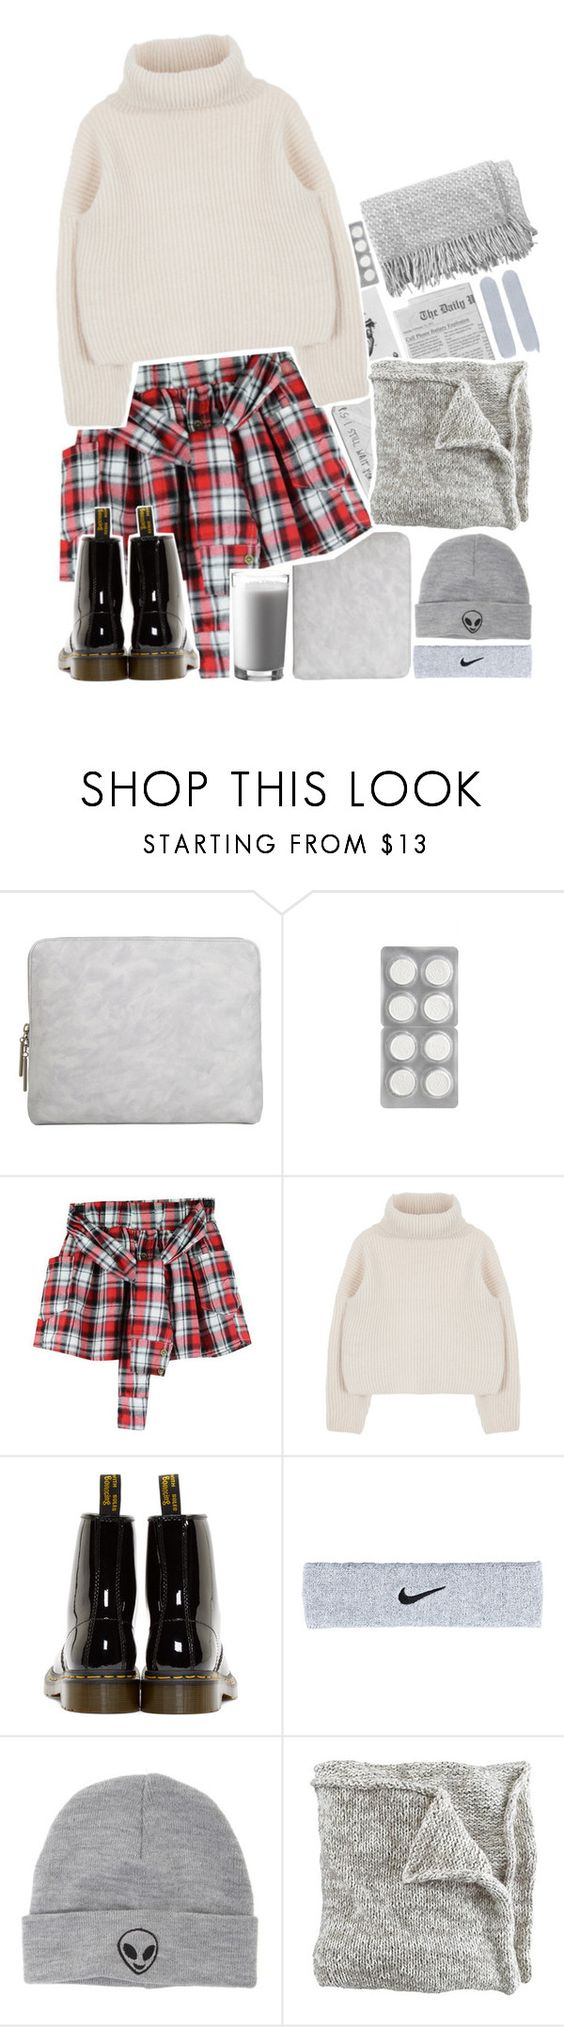 """""""🍫"""" by biteesizedd ❤ liked on Polyvore featuring 3.1 Phillip Lim, Dr. Martens, NIKE, With Love From CA and canvas"""